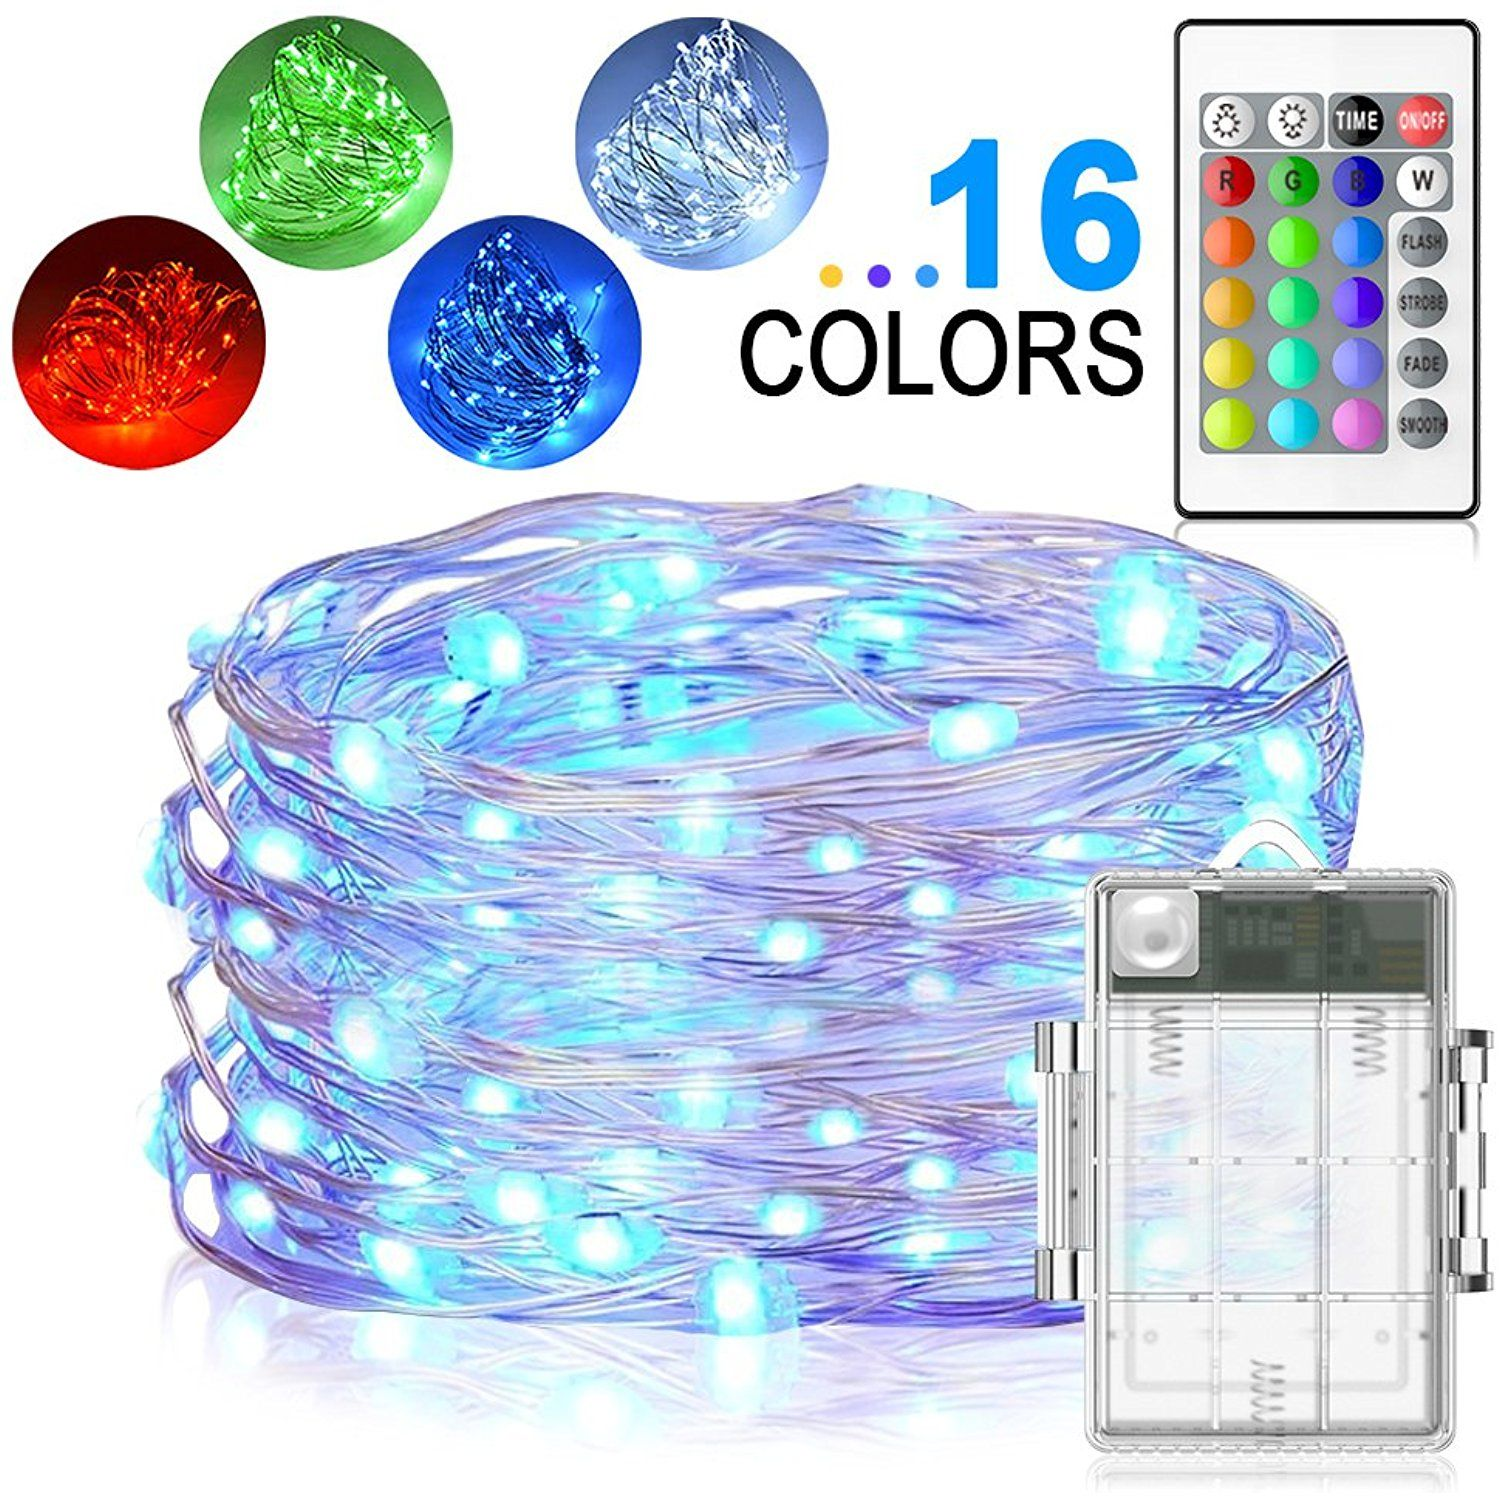 Led string lights yoozon 16ft 50 leds fairy lights battery operated led string lights yoozon 16ft 50 leds fairy lights battery operated waterproof 16 colors outdoor aloadofball Image collections